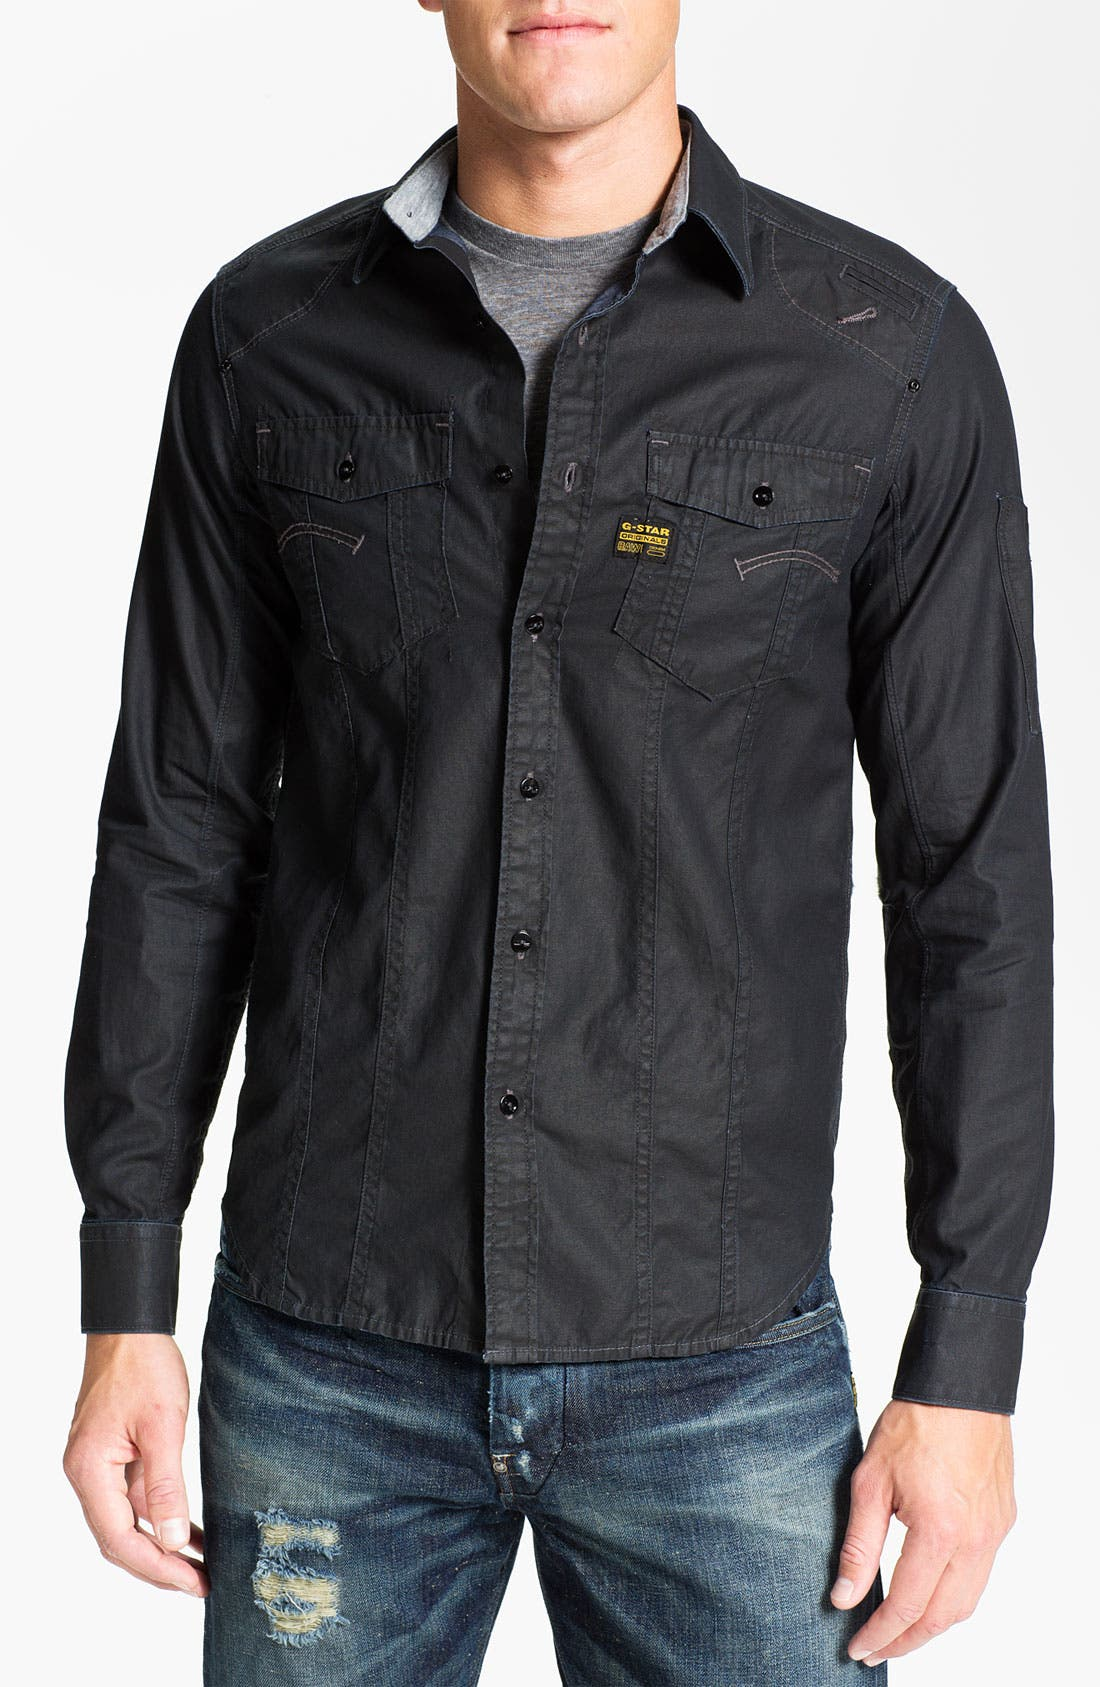 Alternate Image 1 Selected - G-Star Raw 'Modernist' Work Shirt